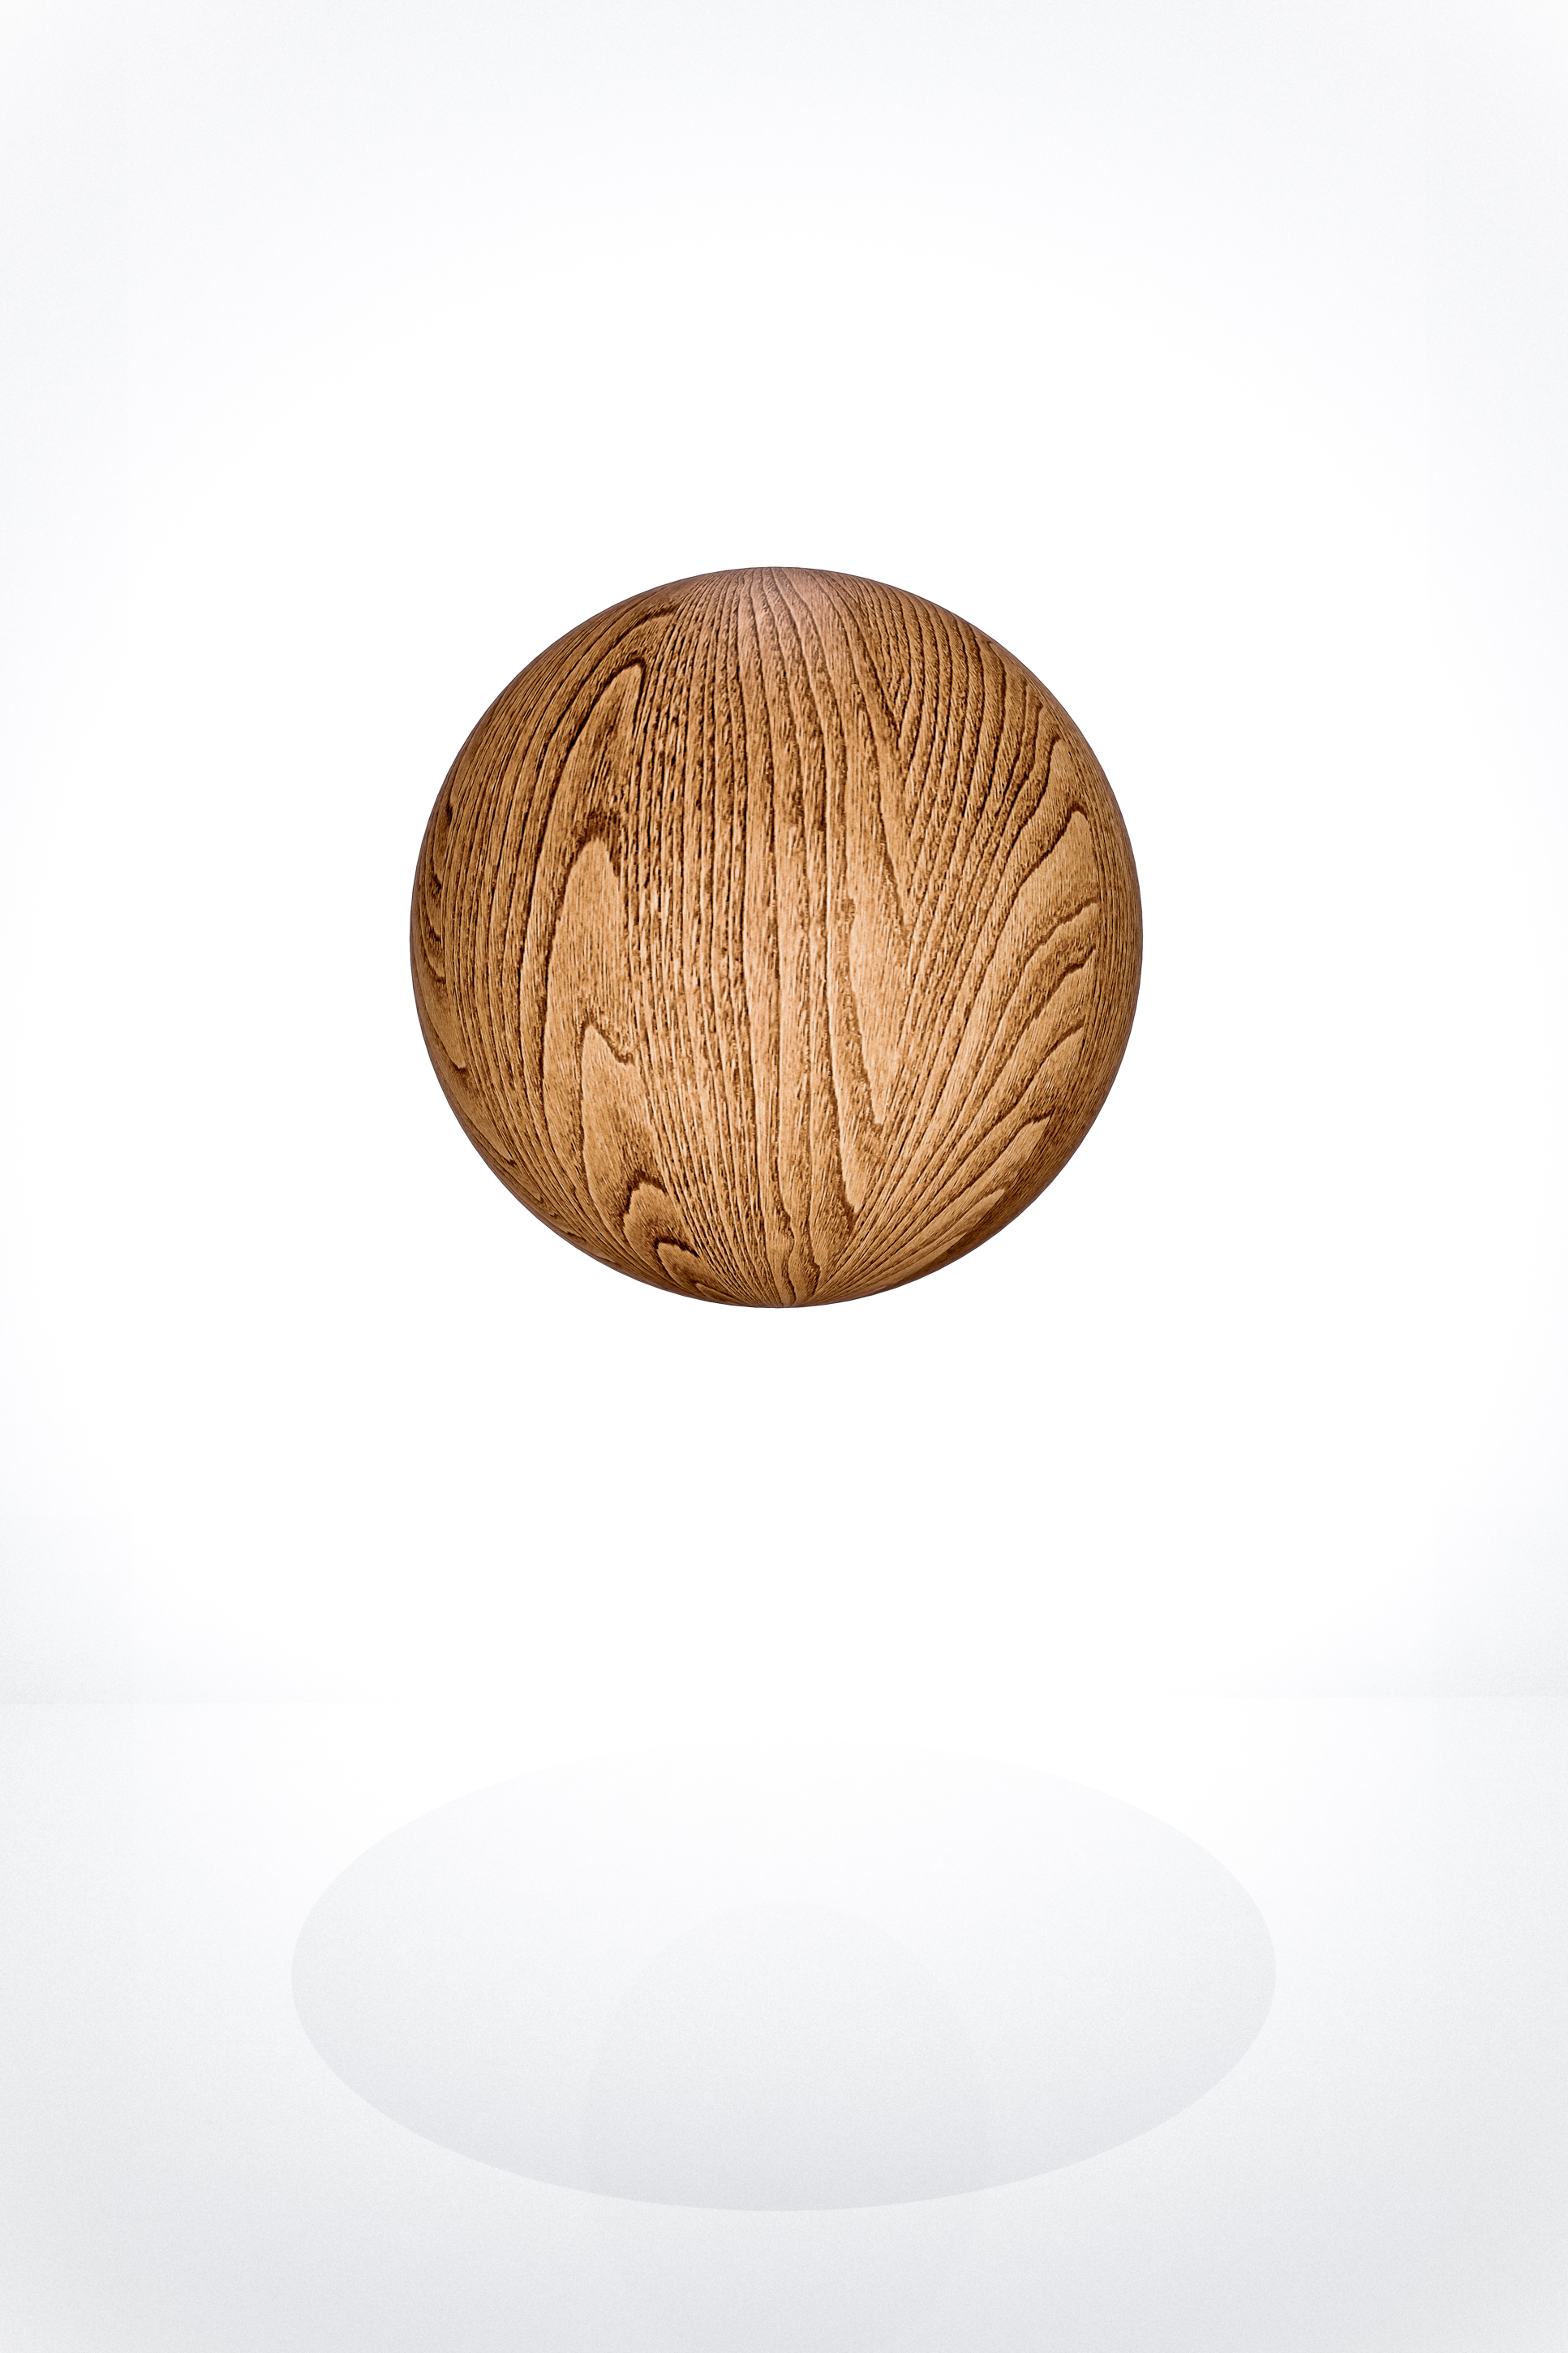 alban_guerry-suire_wooden_geometry-002.jpg